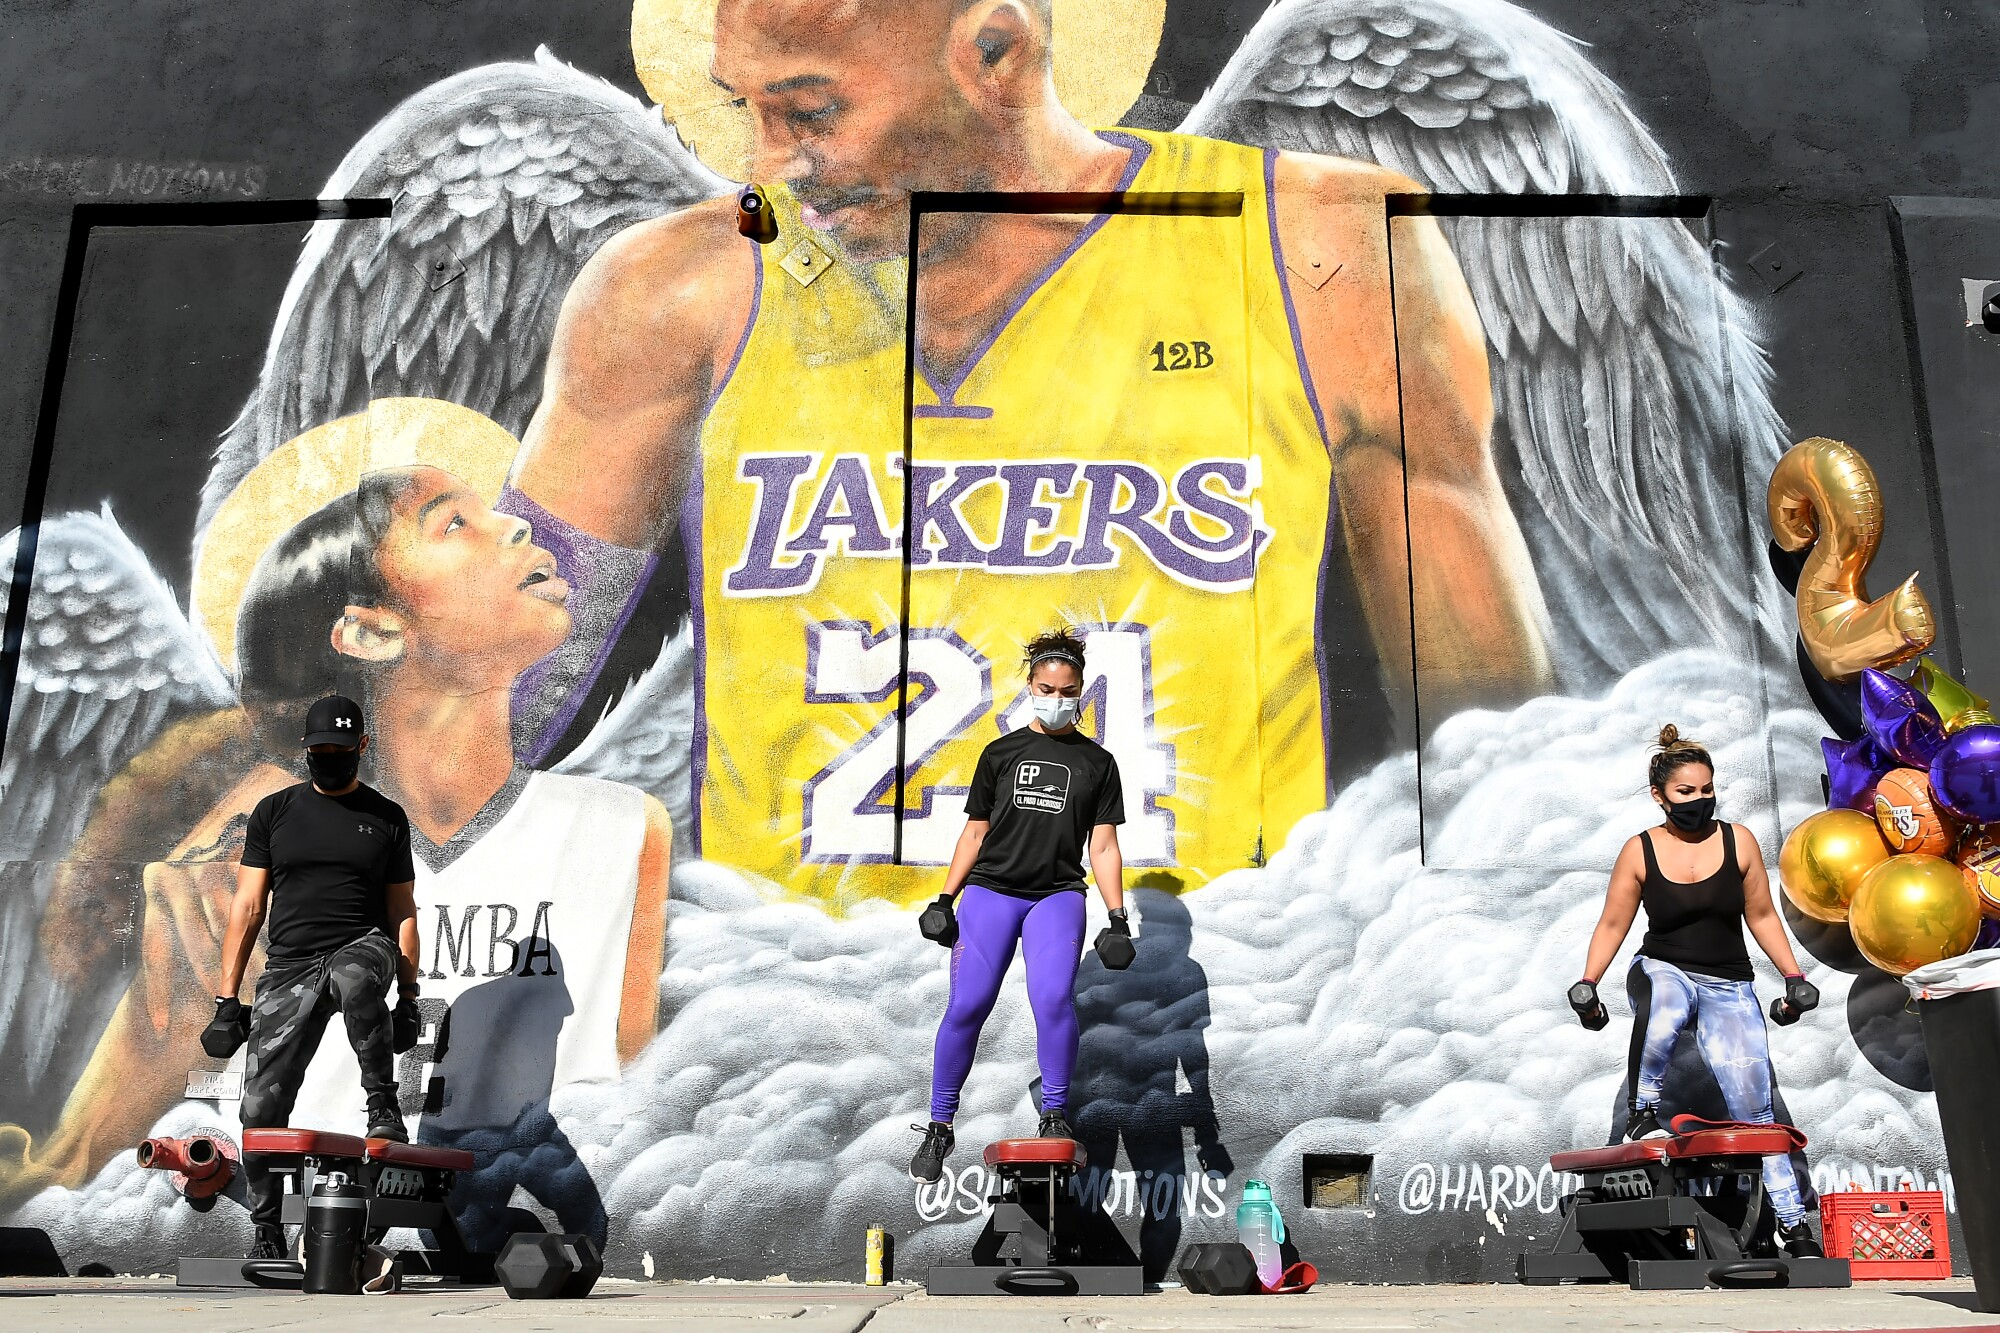 Three people hold dumbbells in front of a mural depicting Kobe and Gianna Bryant with angel wings.